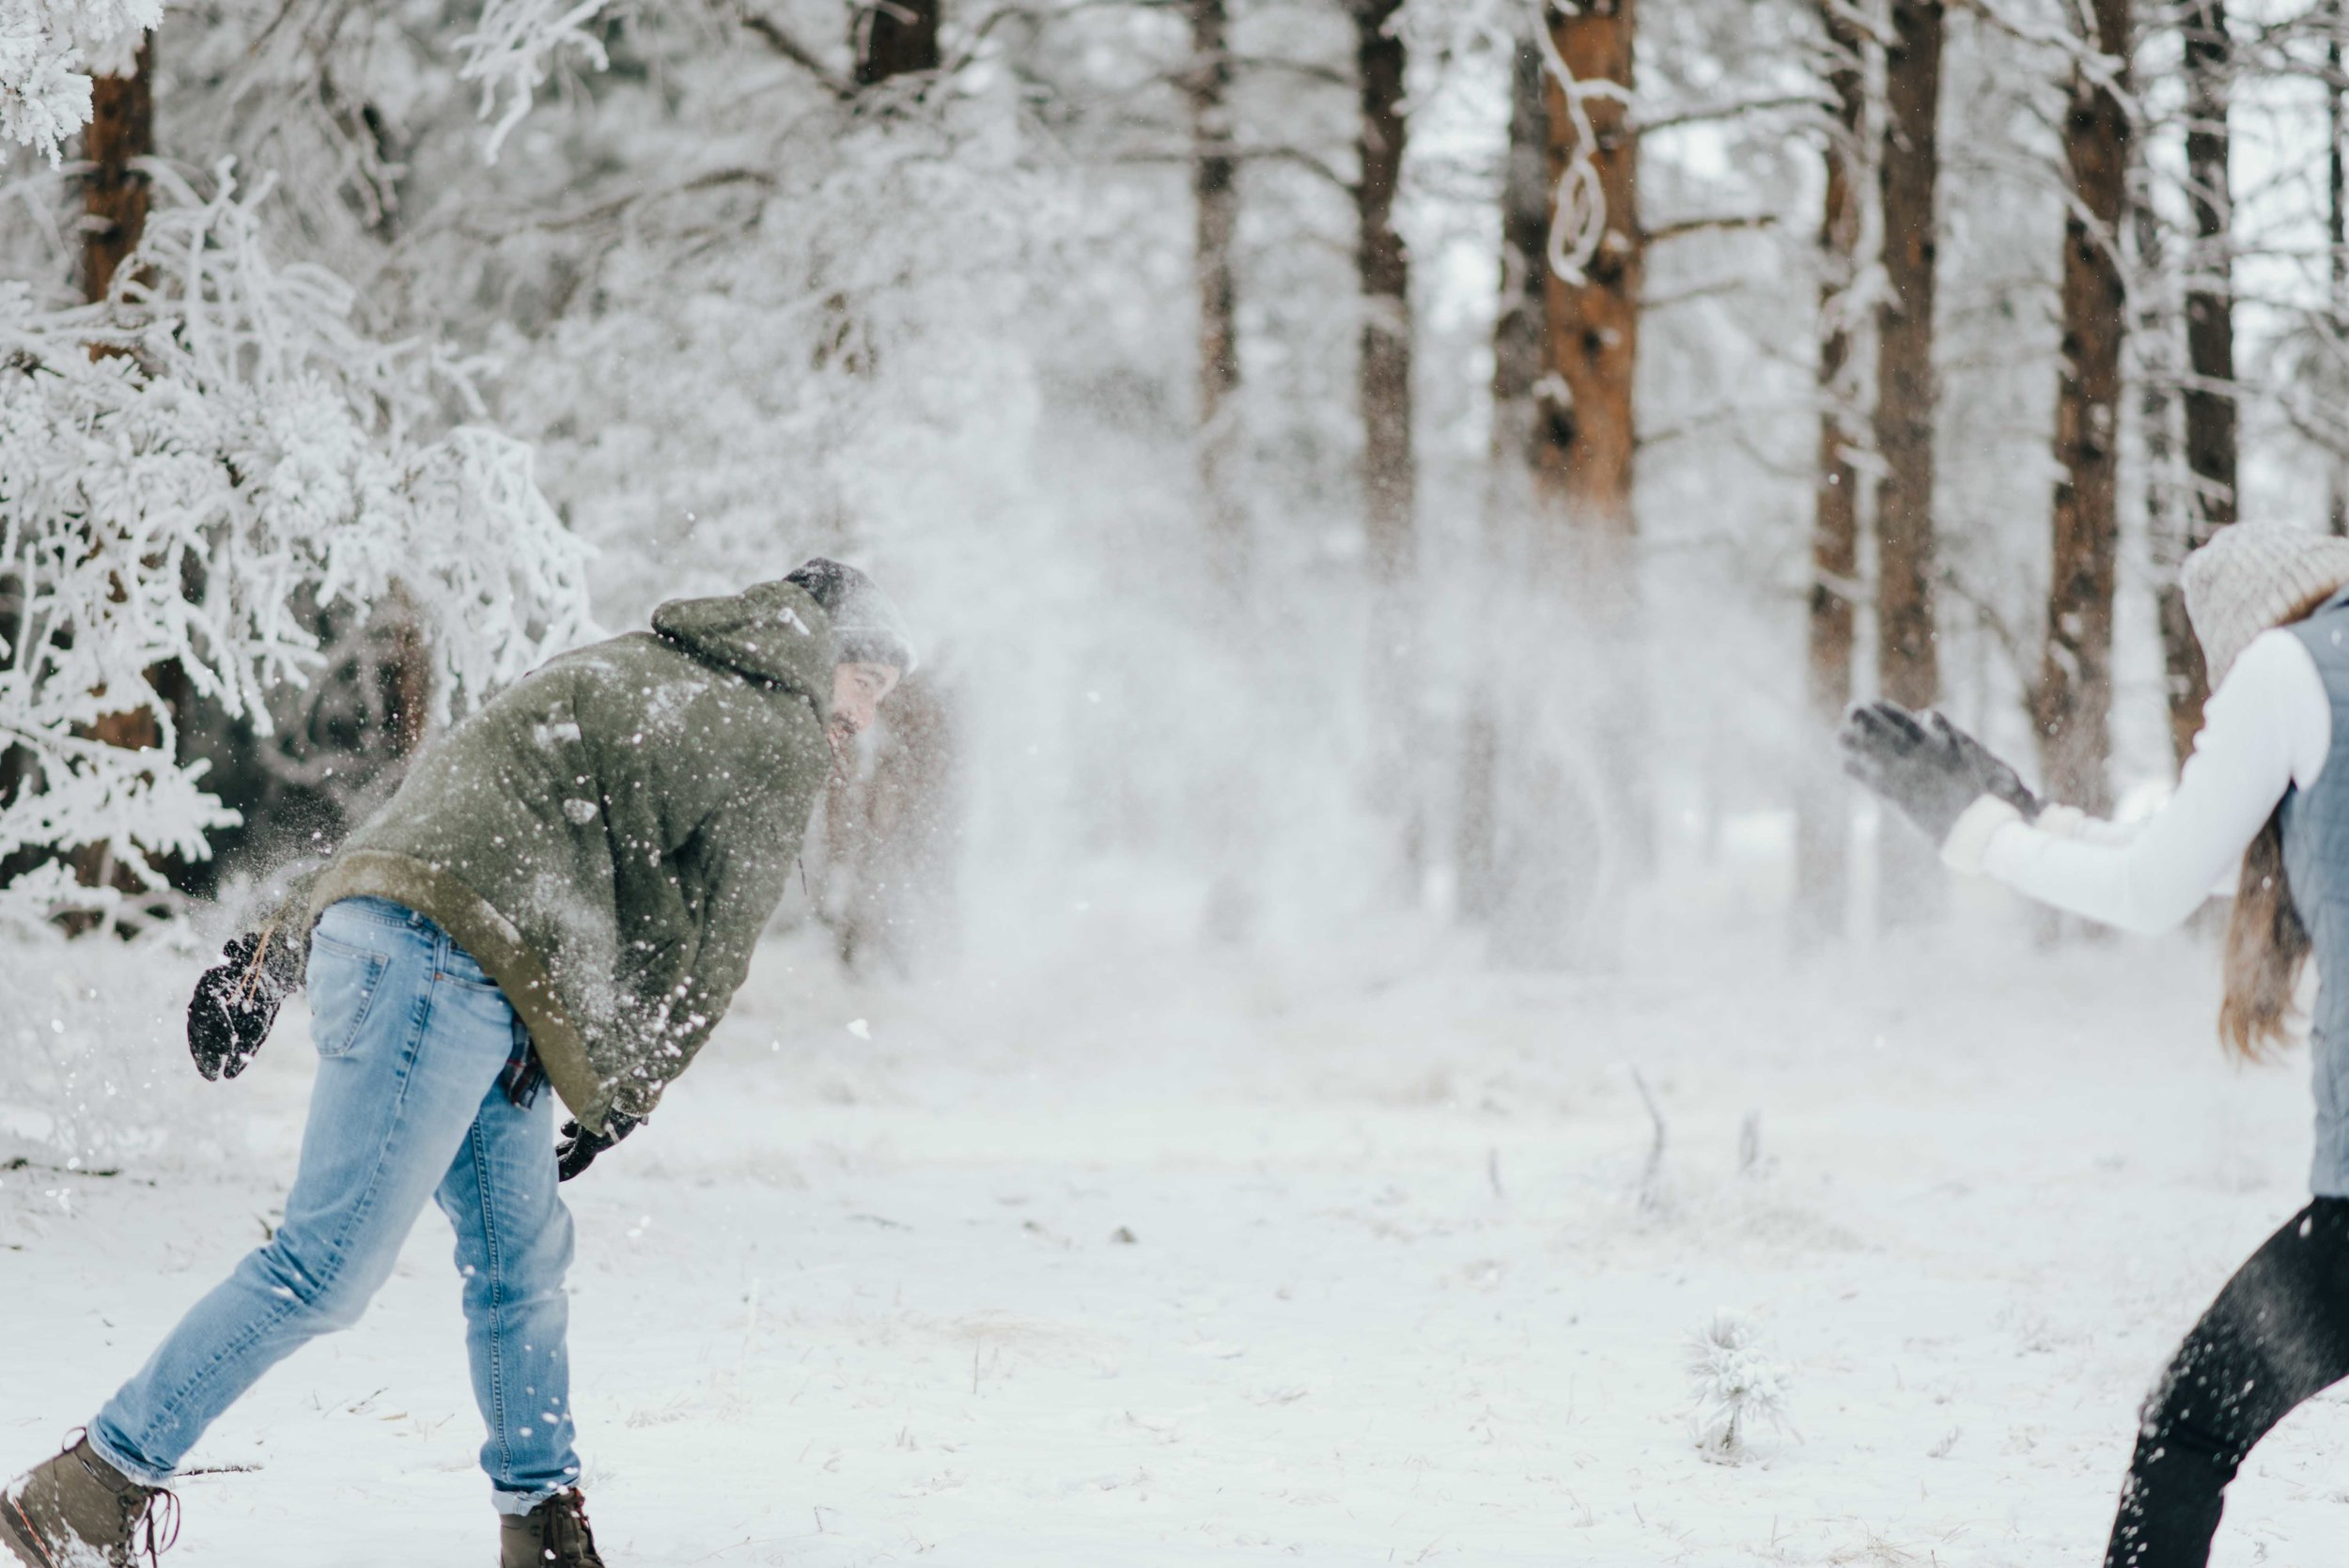 Nik and Tani fighting it out with snowballs during their snowy mountain engagement session in Colorado.